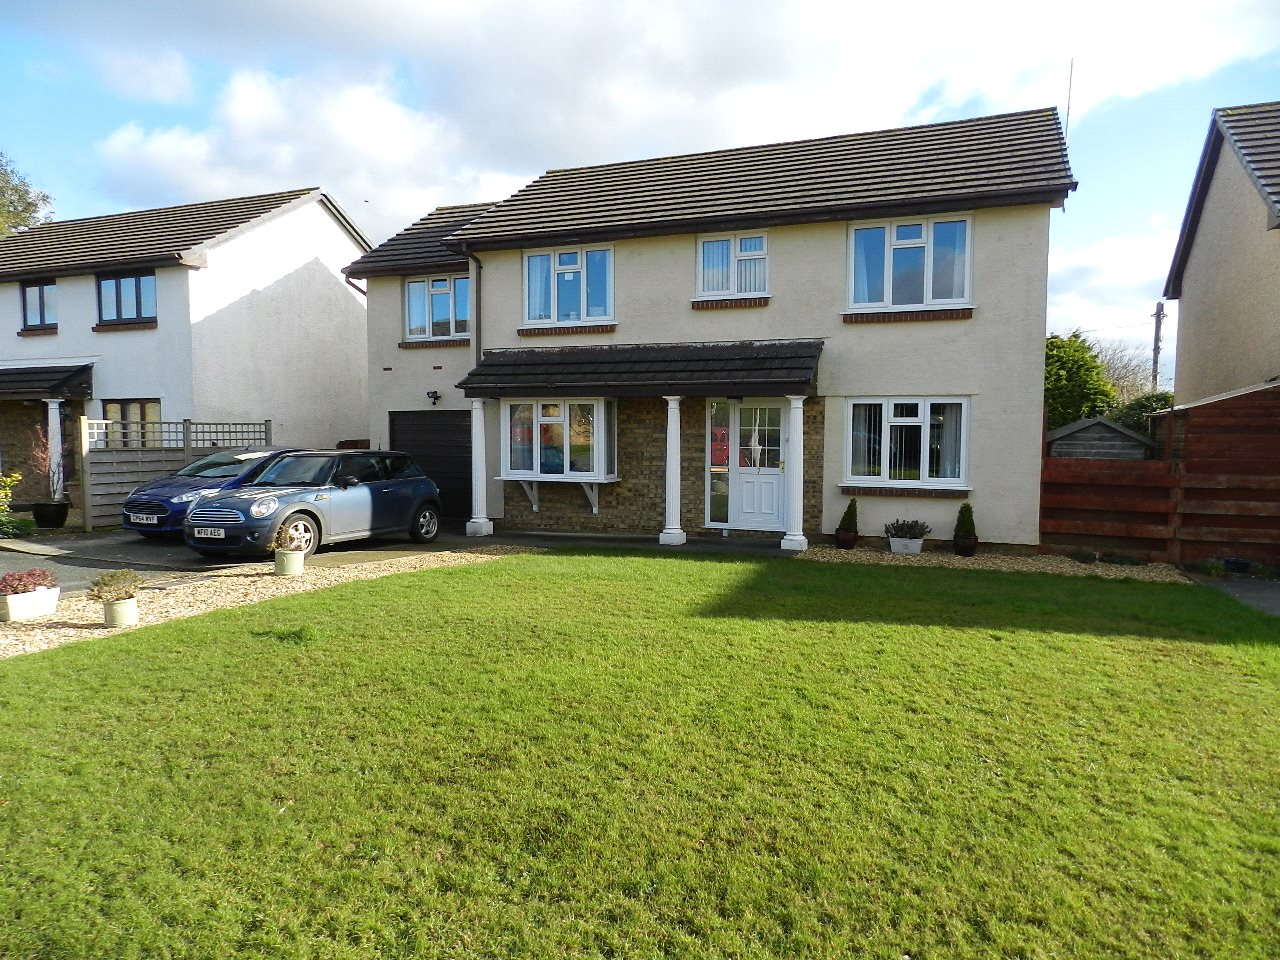 4 Bedrooms Detached House for sale in Heritage Park, Haverfordwest, Pembrokeshire